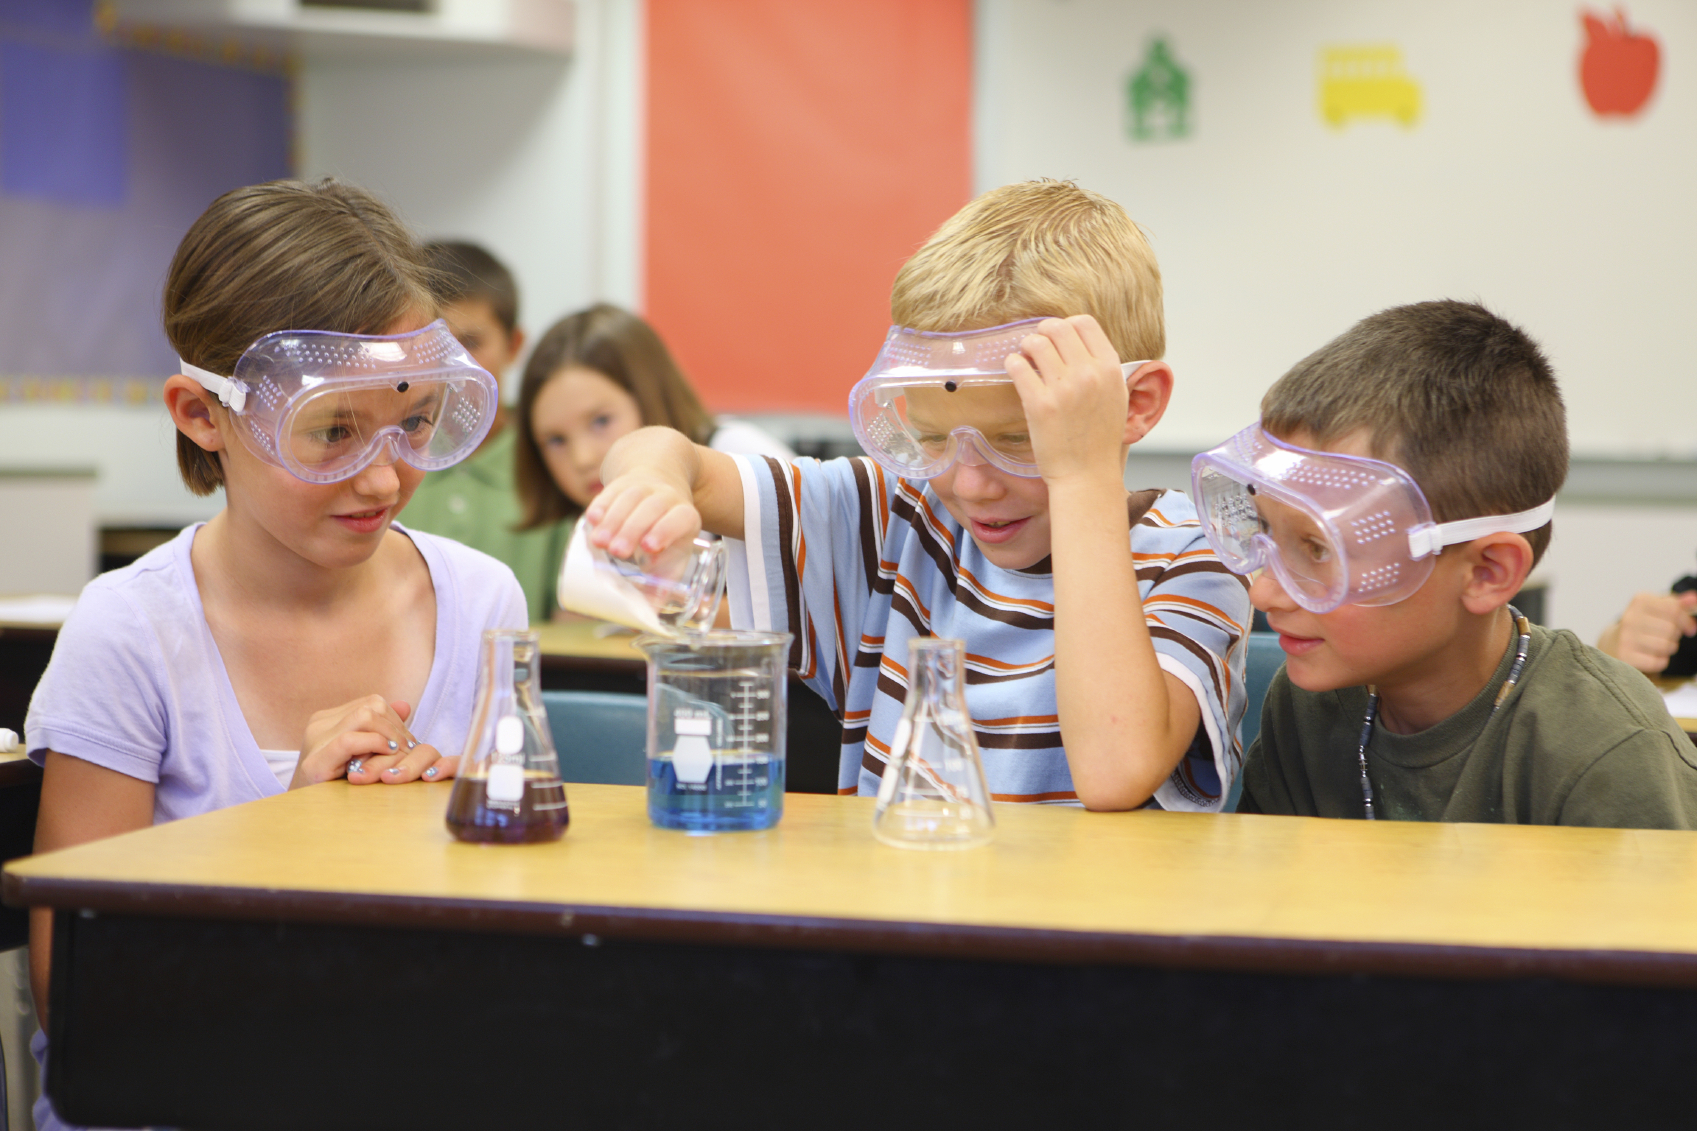 Children Experimenting with Salts